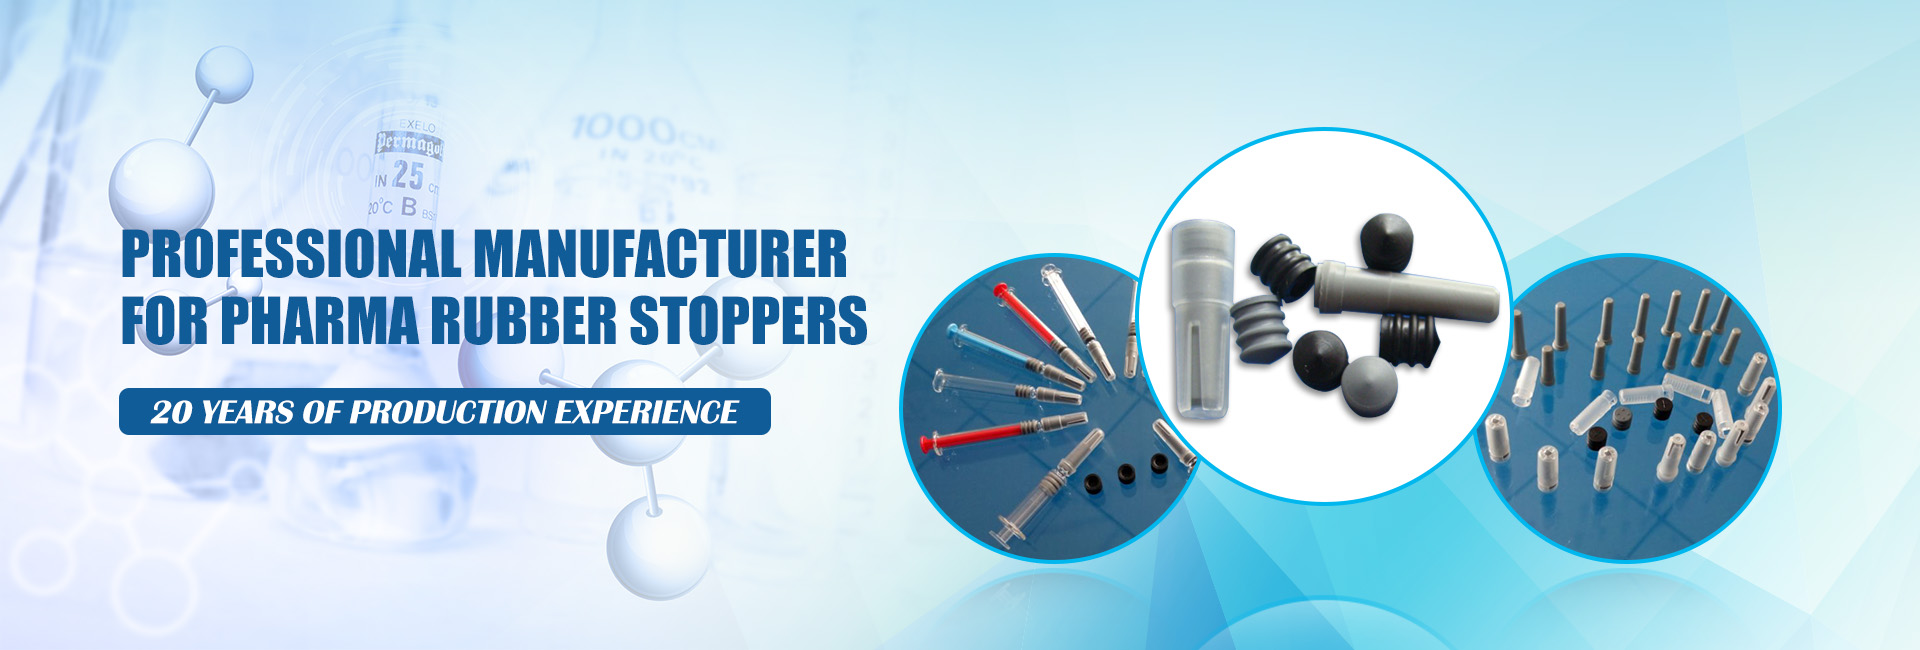 PROFESSIONAL MANUFACTURER  FOR PHARMA RUBBER STOPPERS